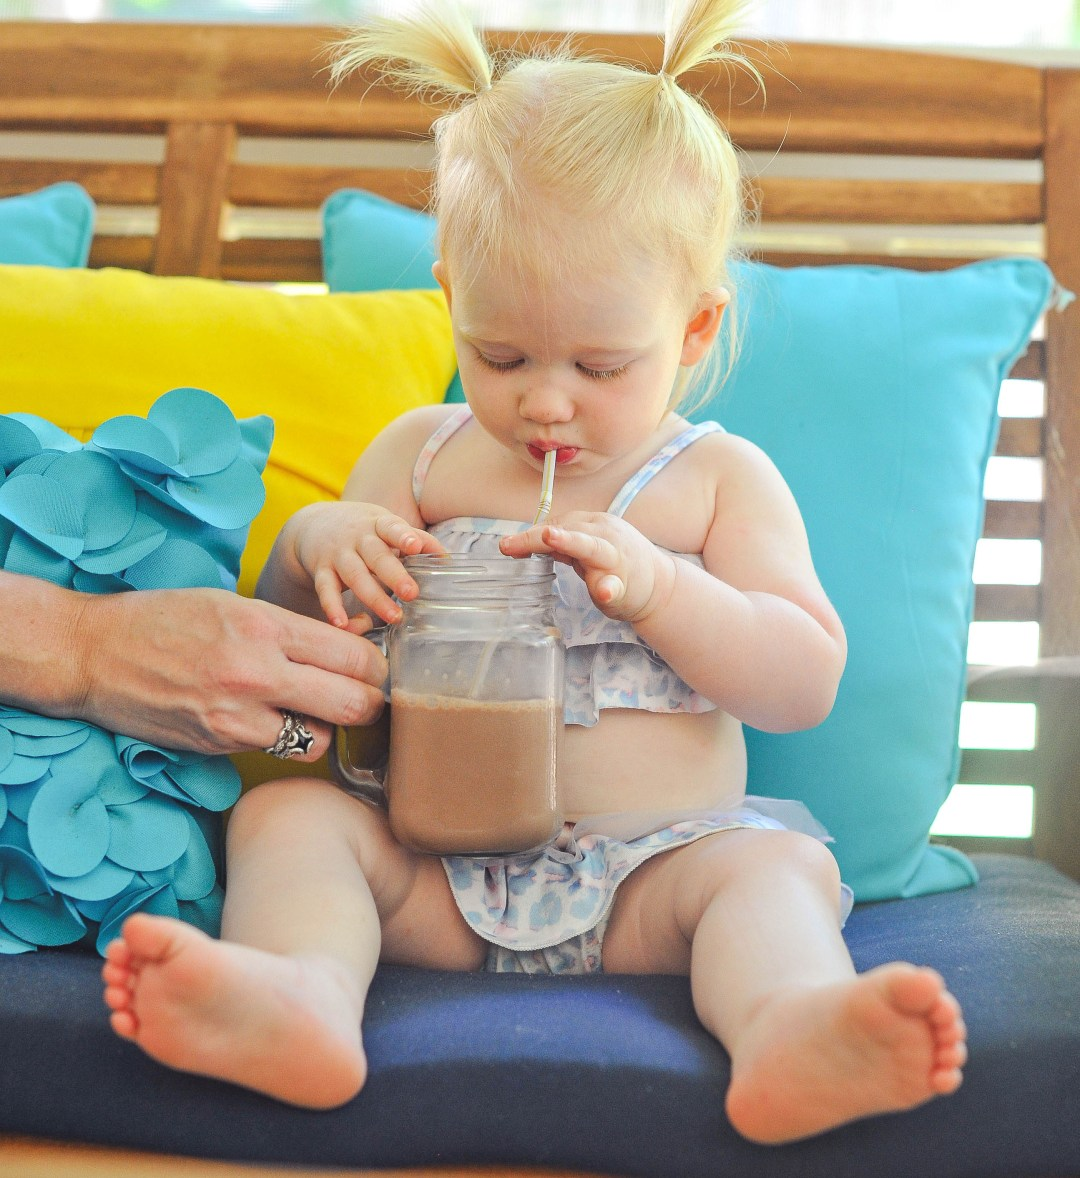 fairlife SuperKids Ultra Filtered Milk and Why We Love It by Atlanta blogger Jessica of Happily Hughes